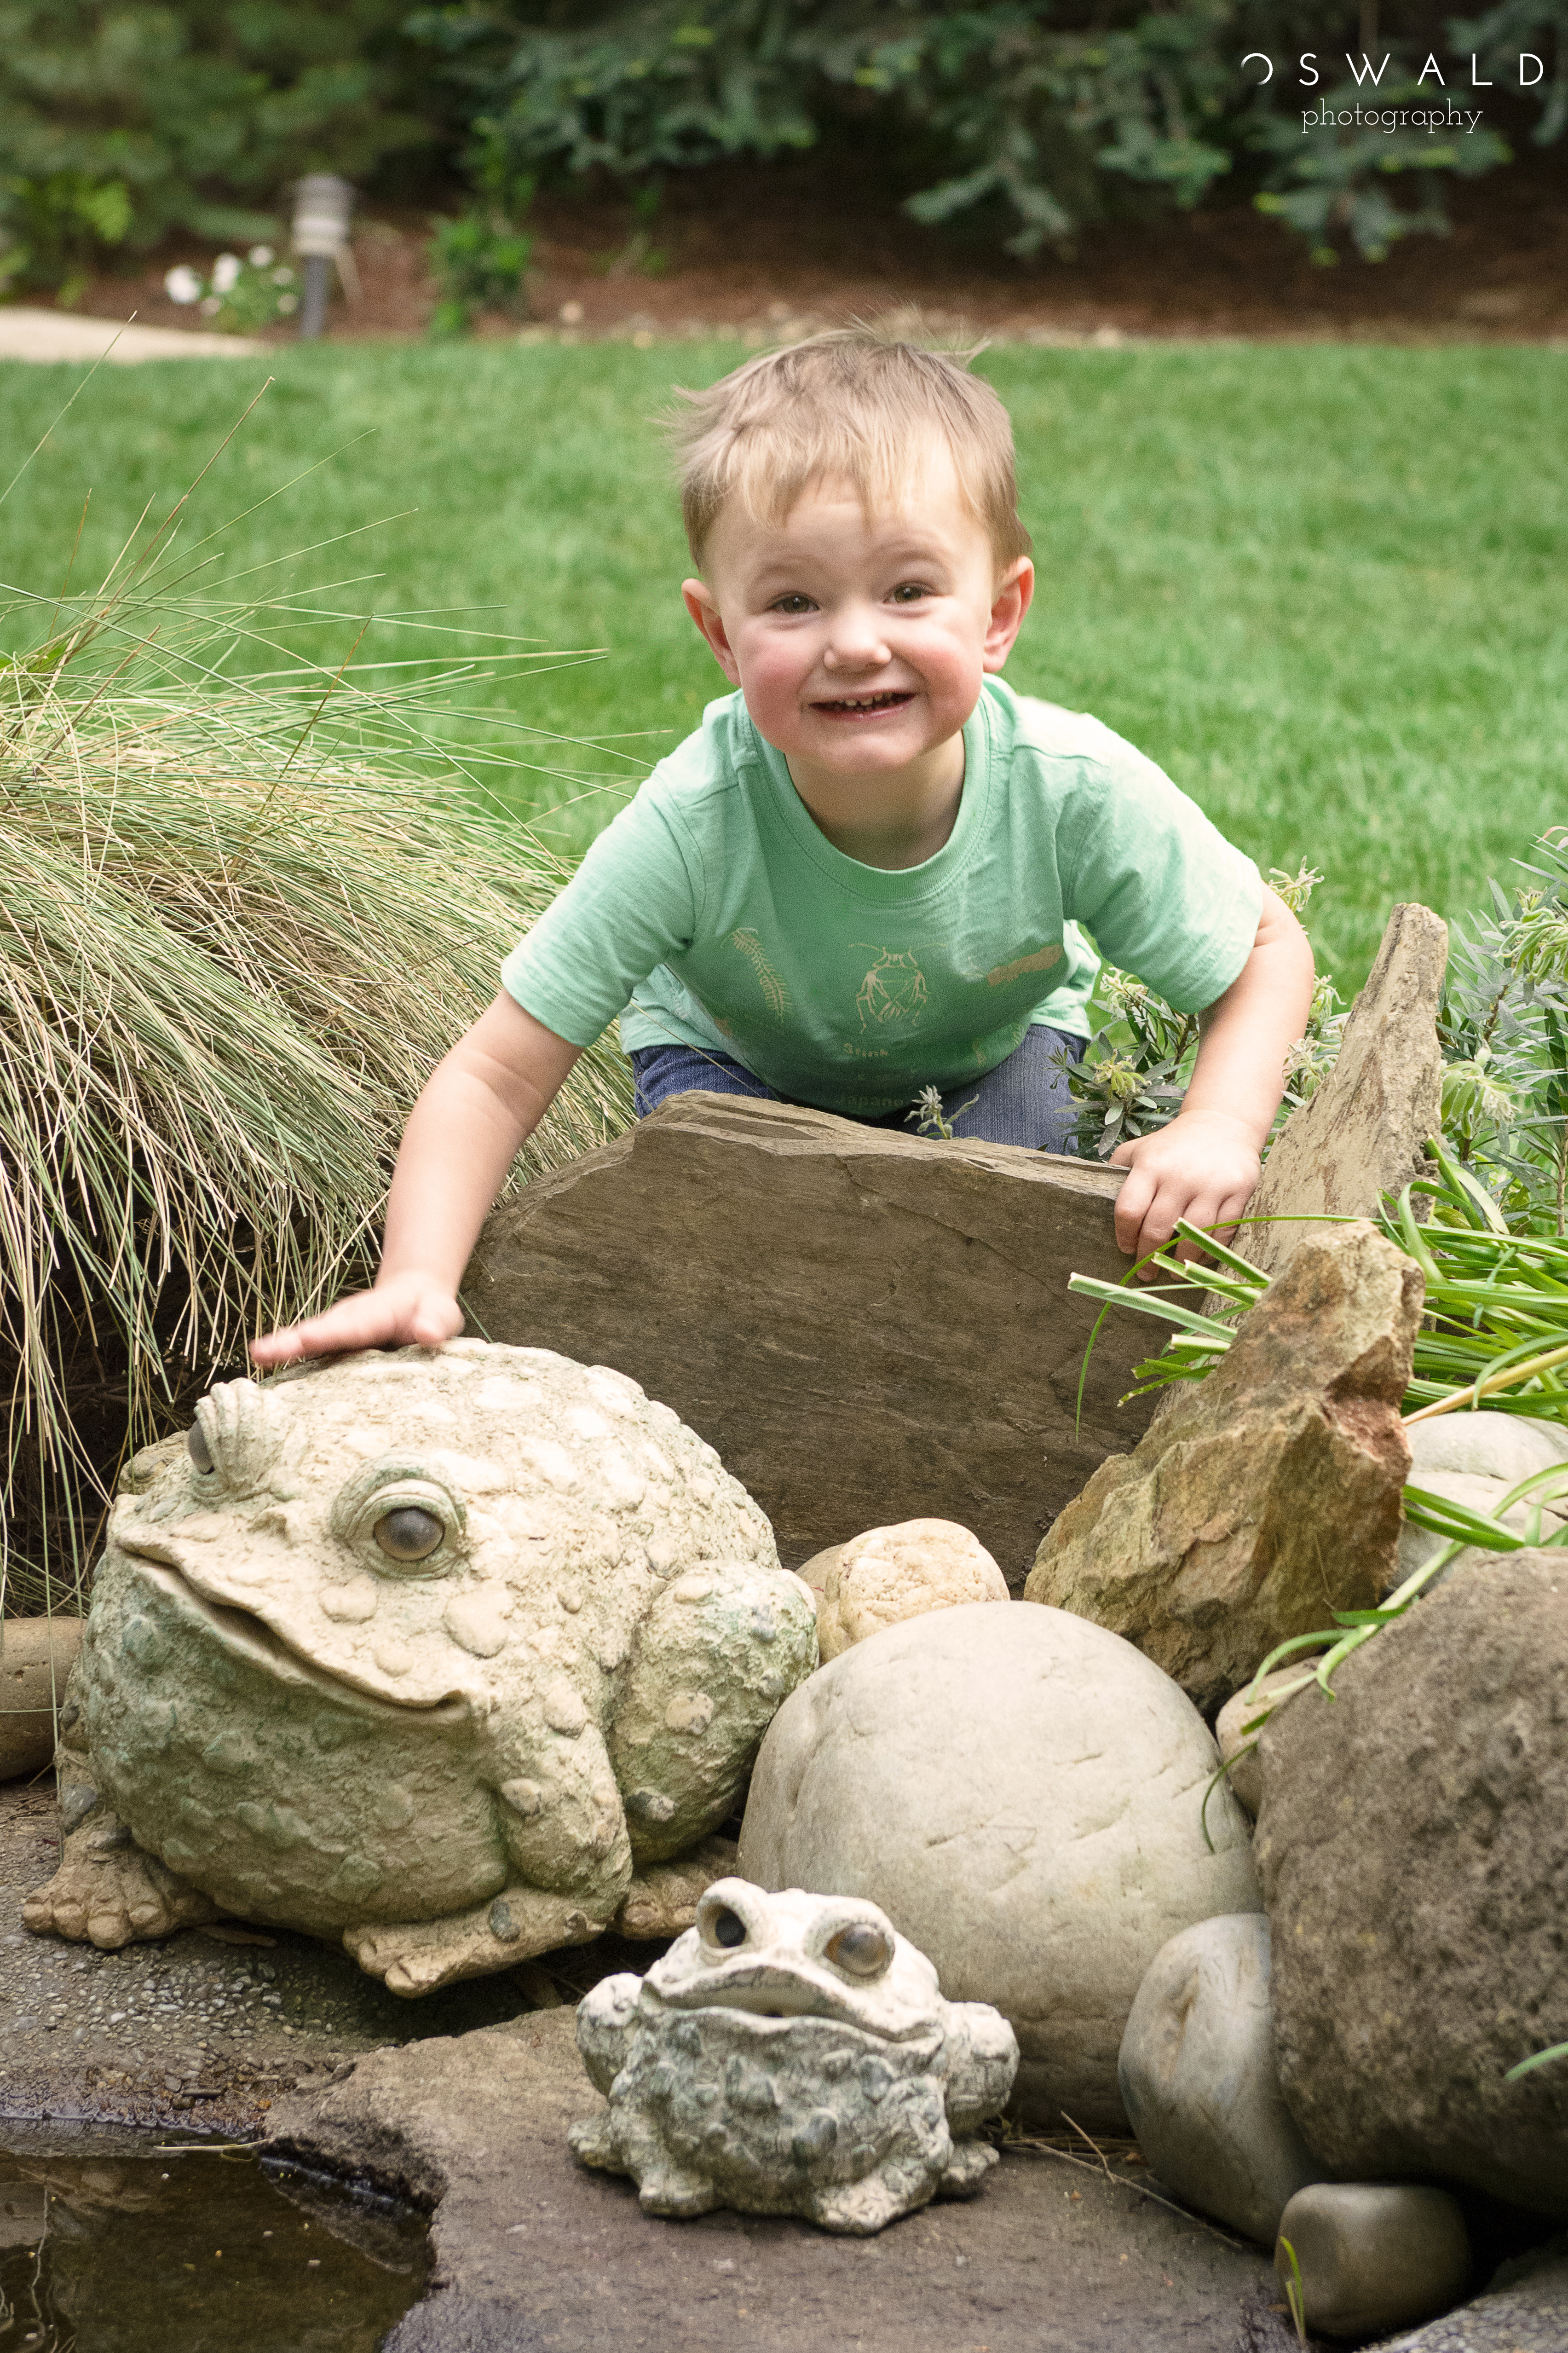 Photograph of a little caucasian boy petting a decorative stone toad by the side of a backyard pond.